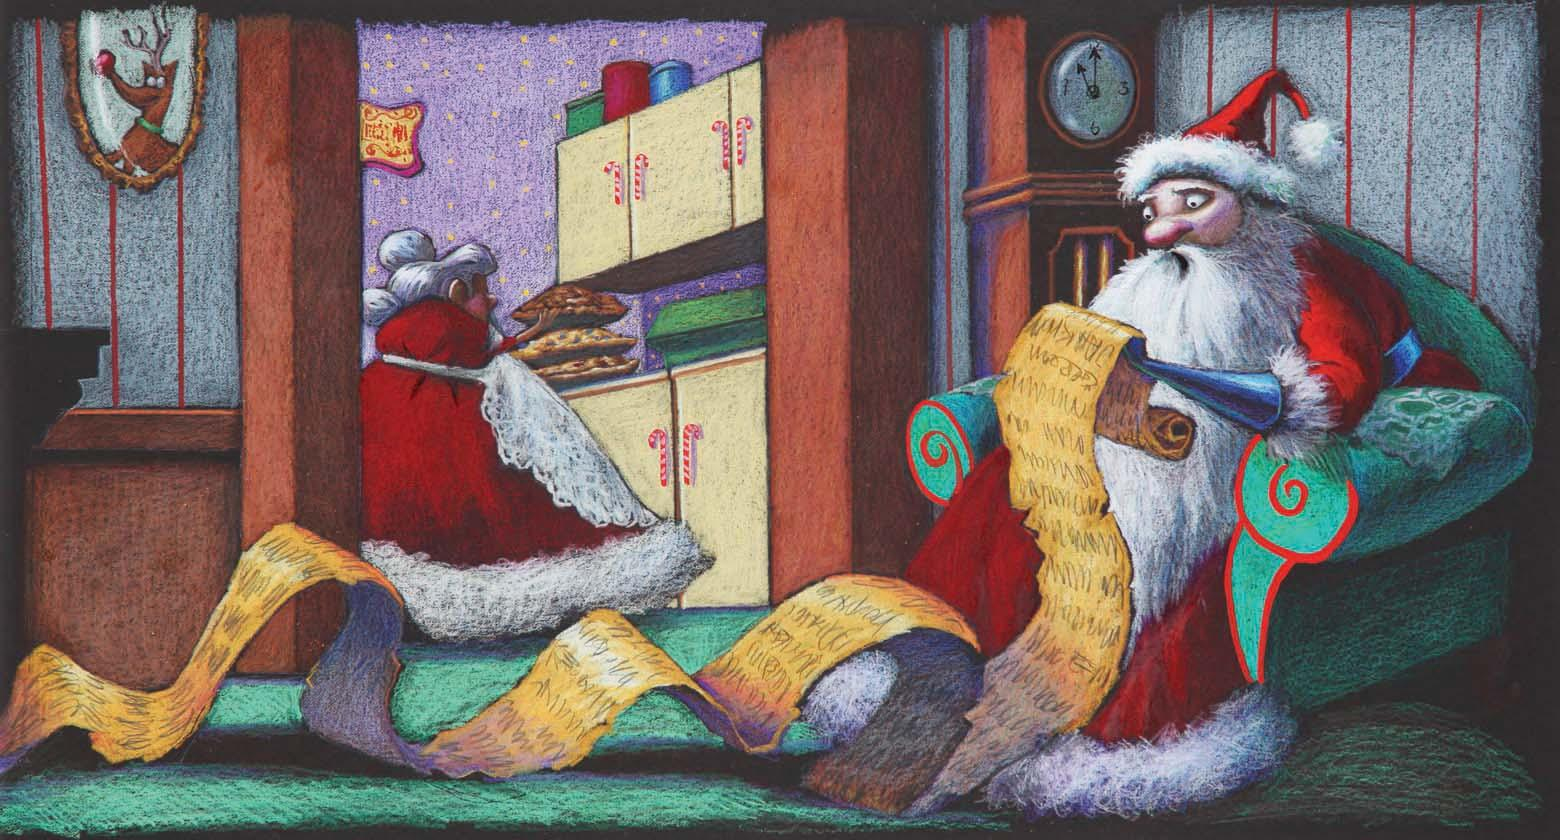 Original concept artwork for Santa from The Nightmare Before Christmas